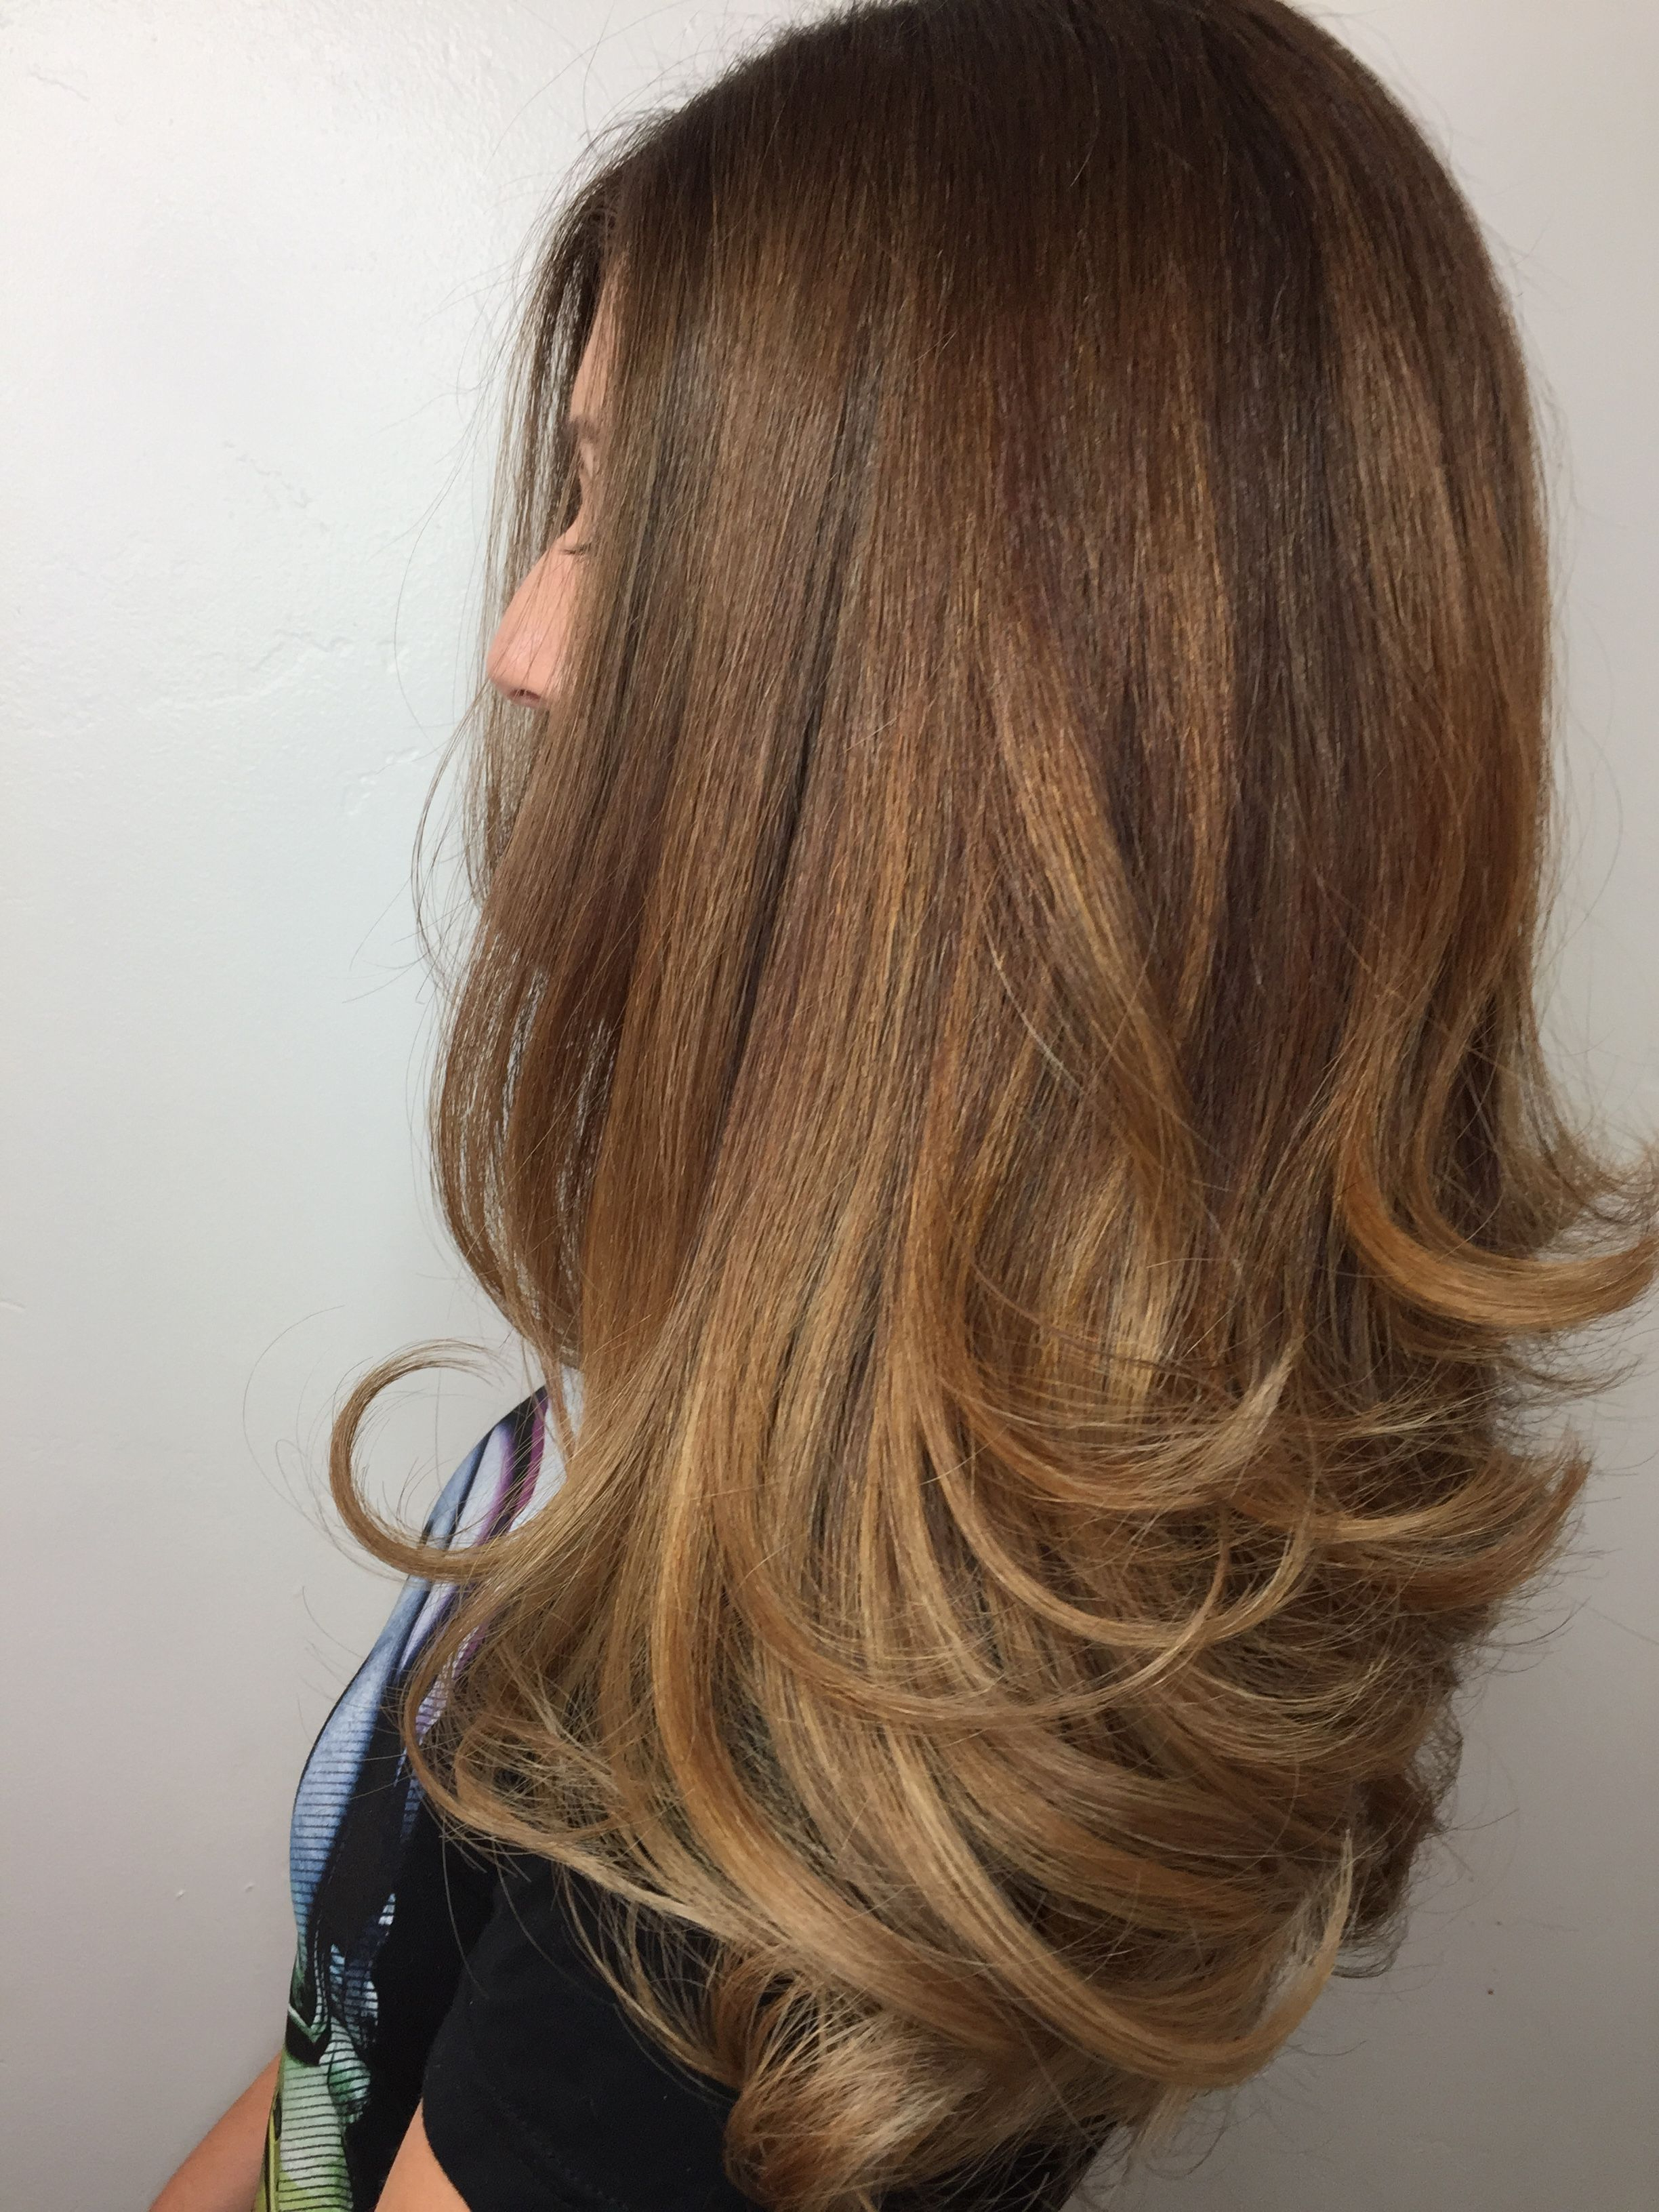 Brunette Pertaining To Most Popular Balayage Hairstyles For Long Layers (View 11 of 20)